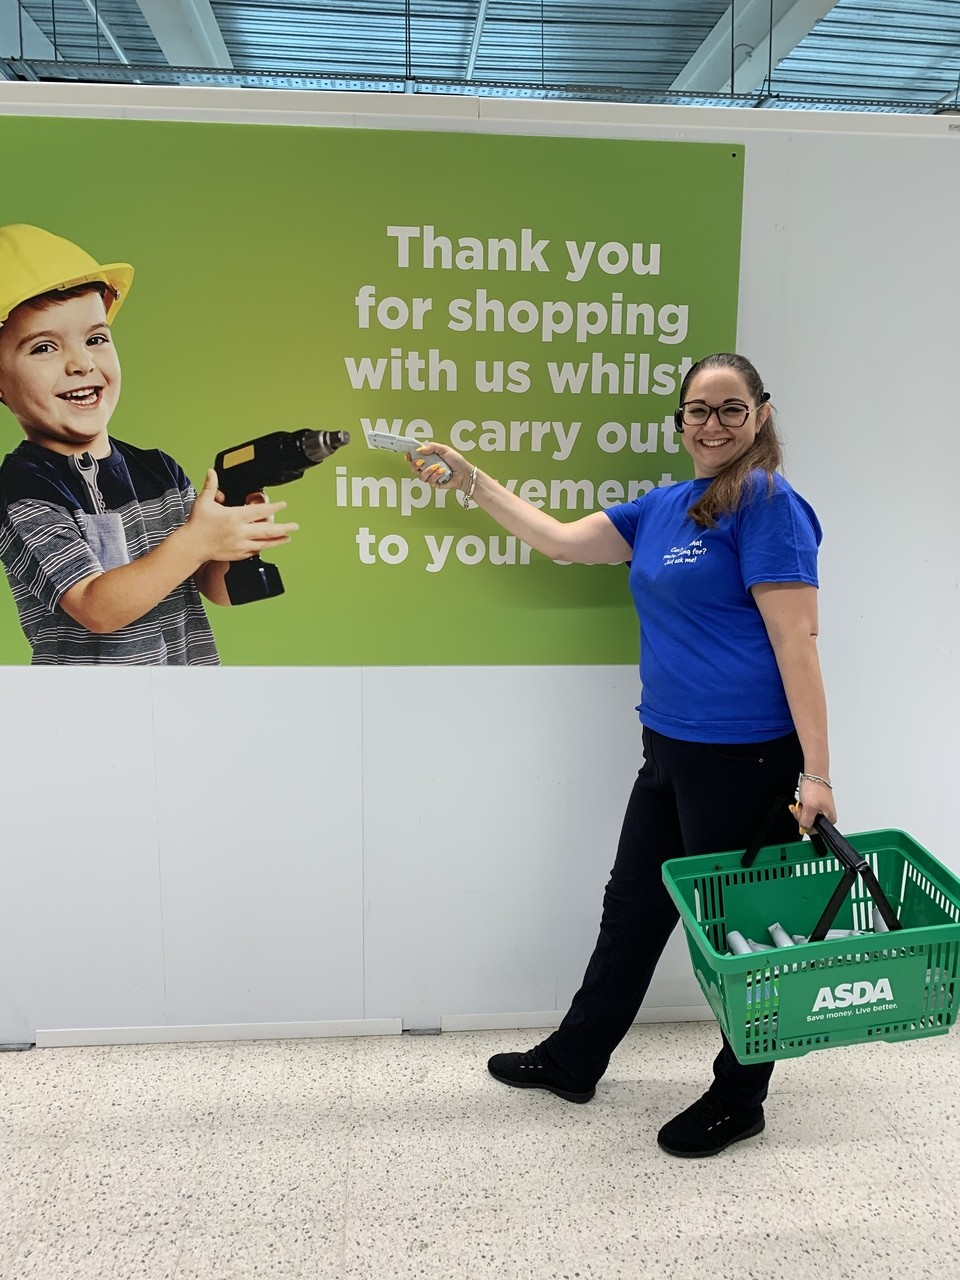 Asda Feltham's big refit makes good progress | Asda Feltham